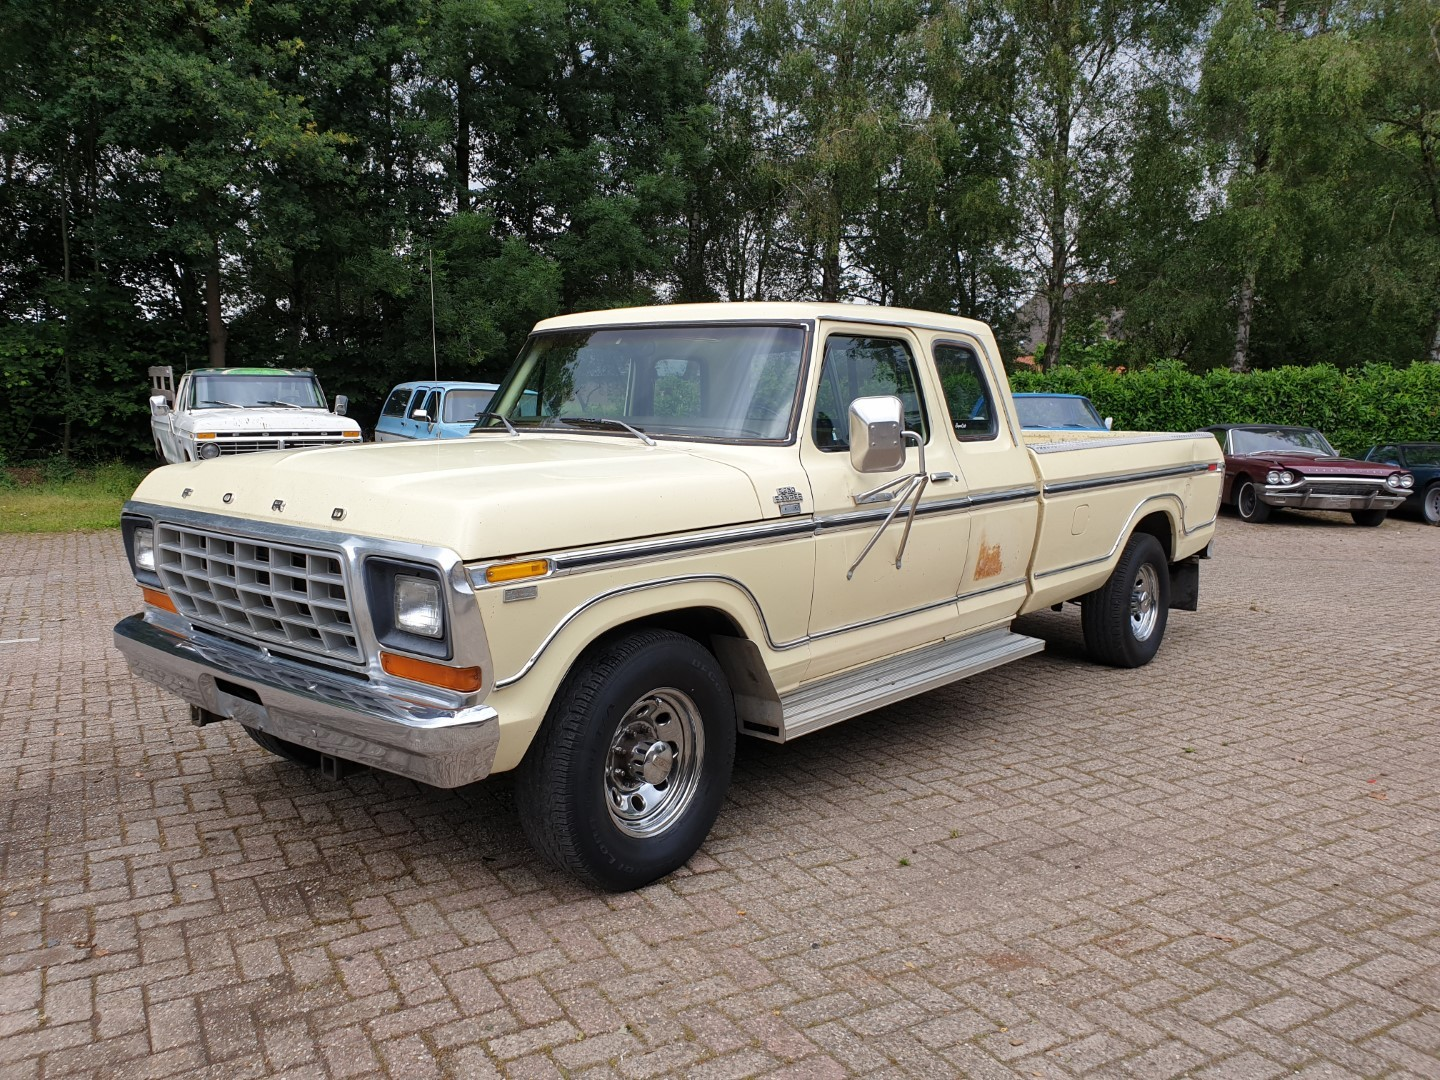 1978 Ford F250 Xlt Lariat Camper Special Supercab 460ci Speed Monkey Cars